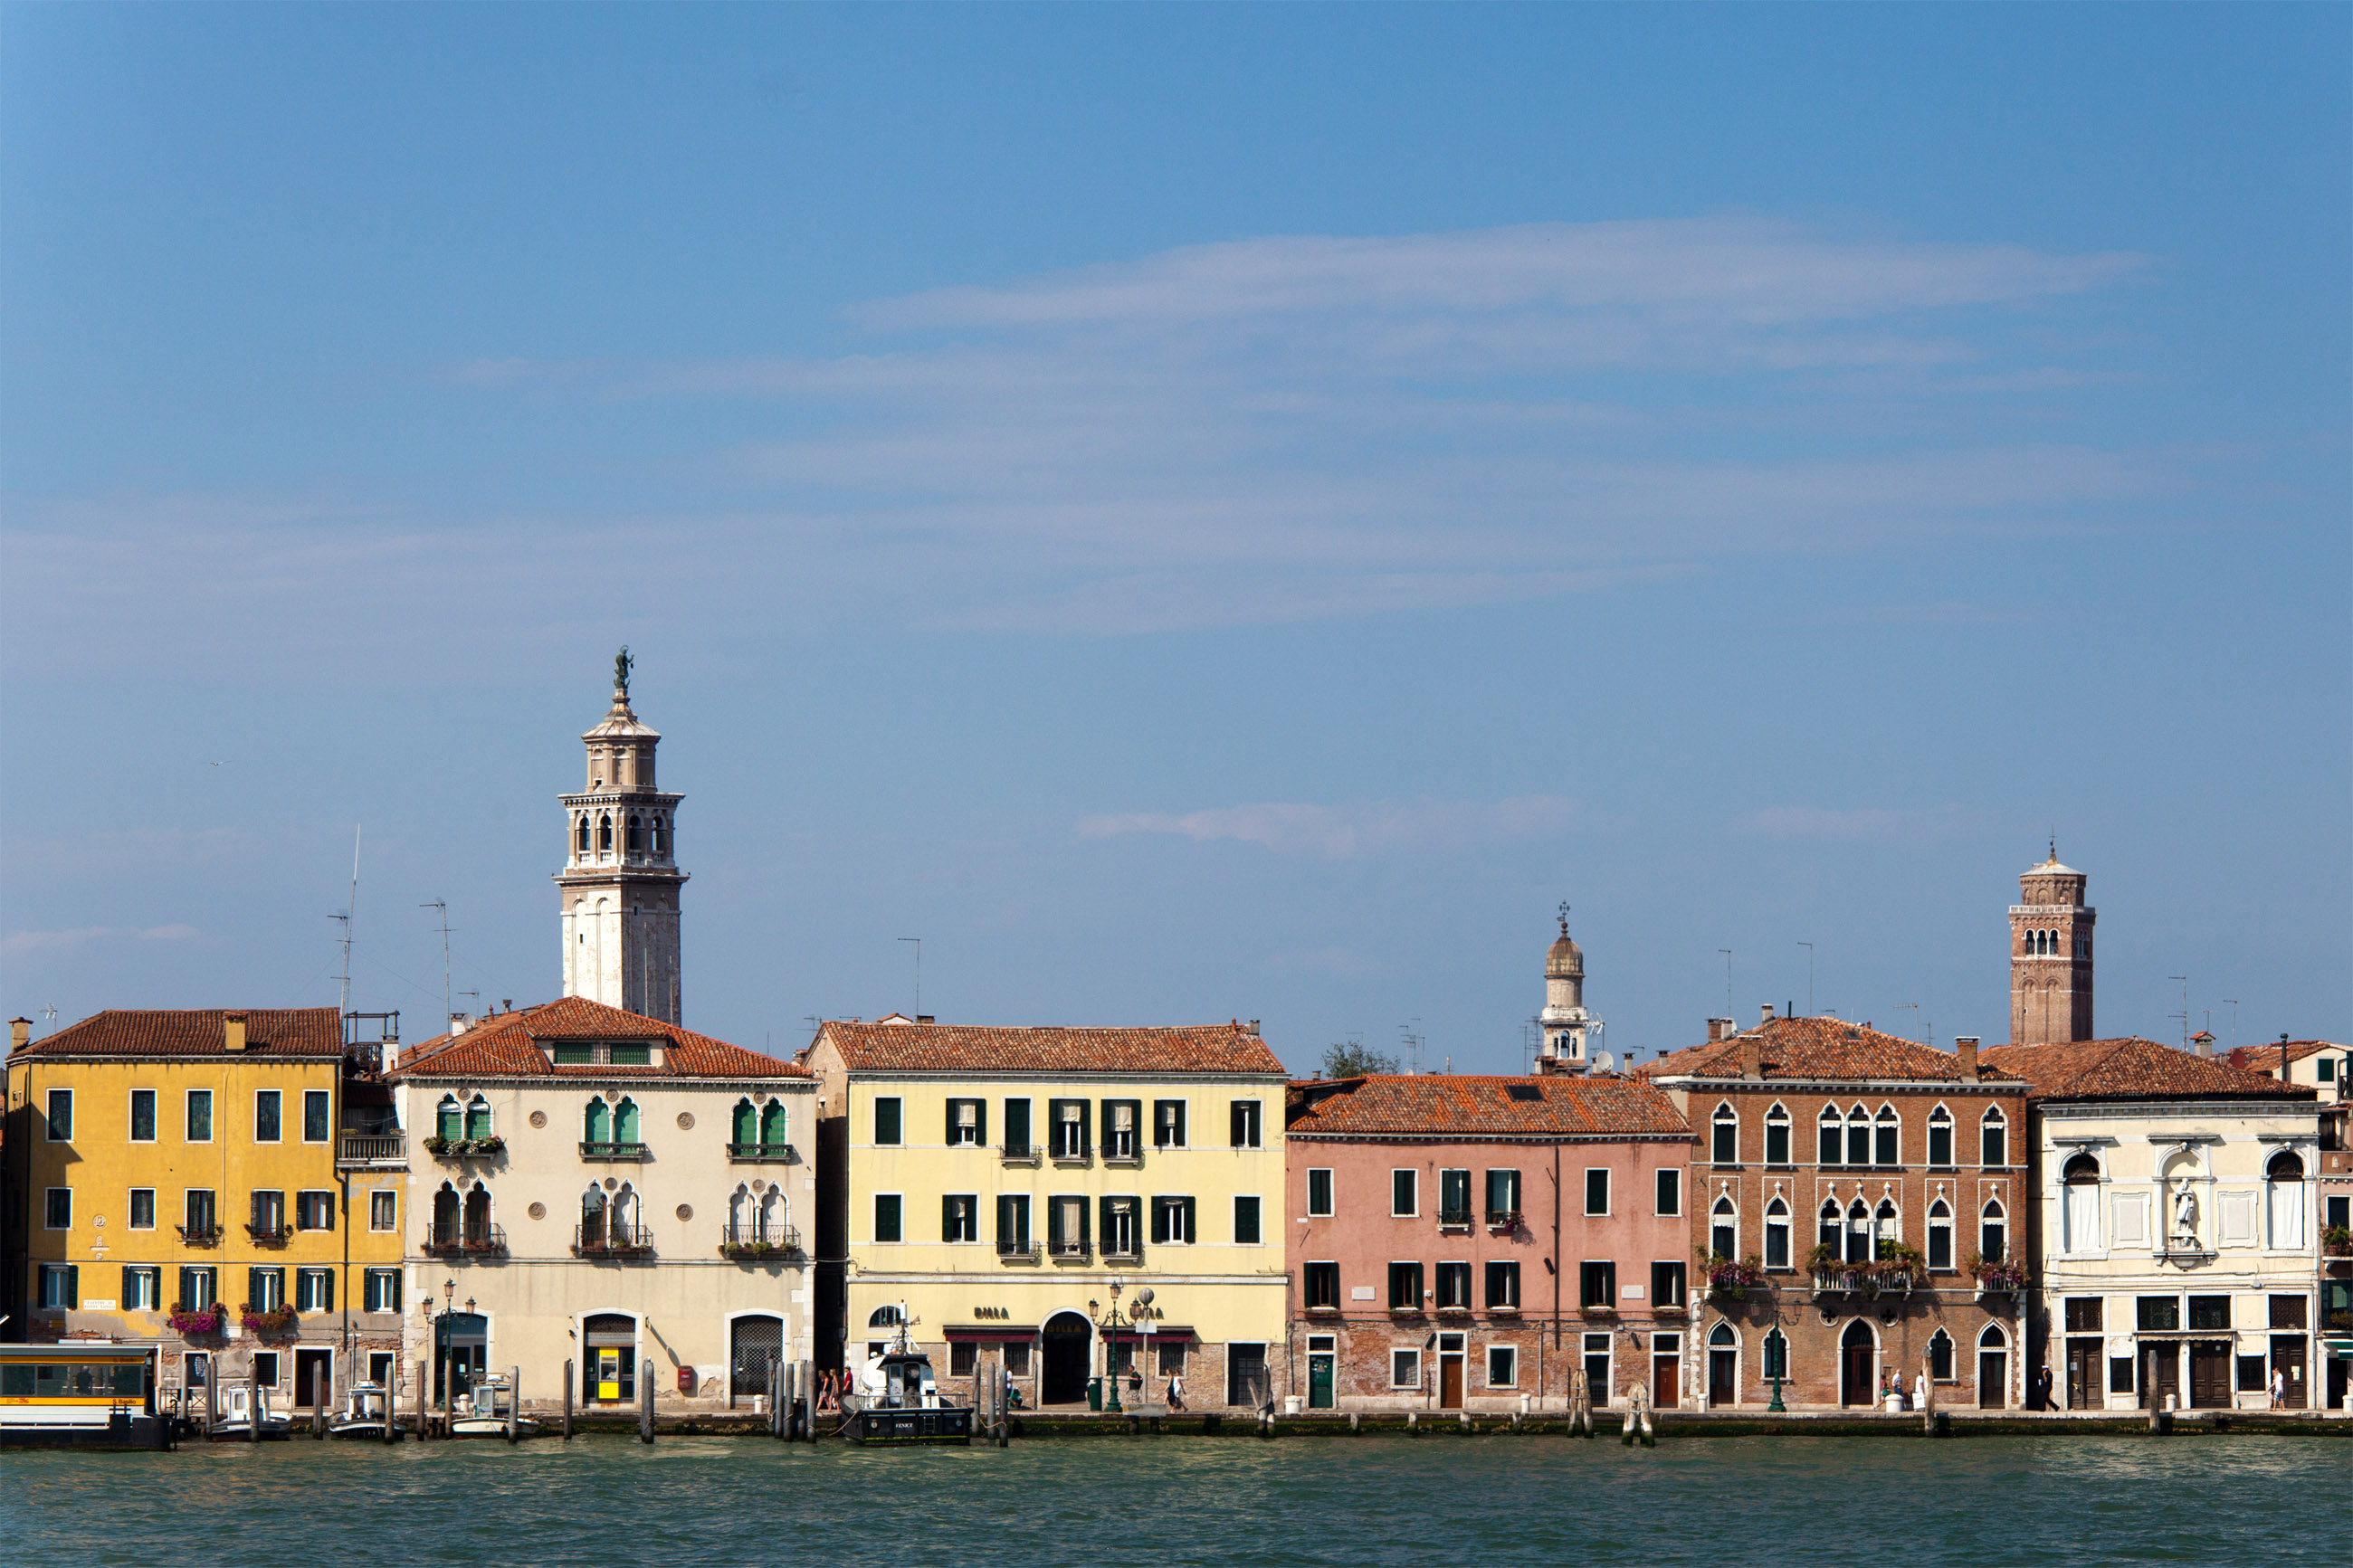 Houses in the city of venice photo